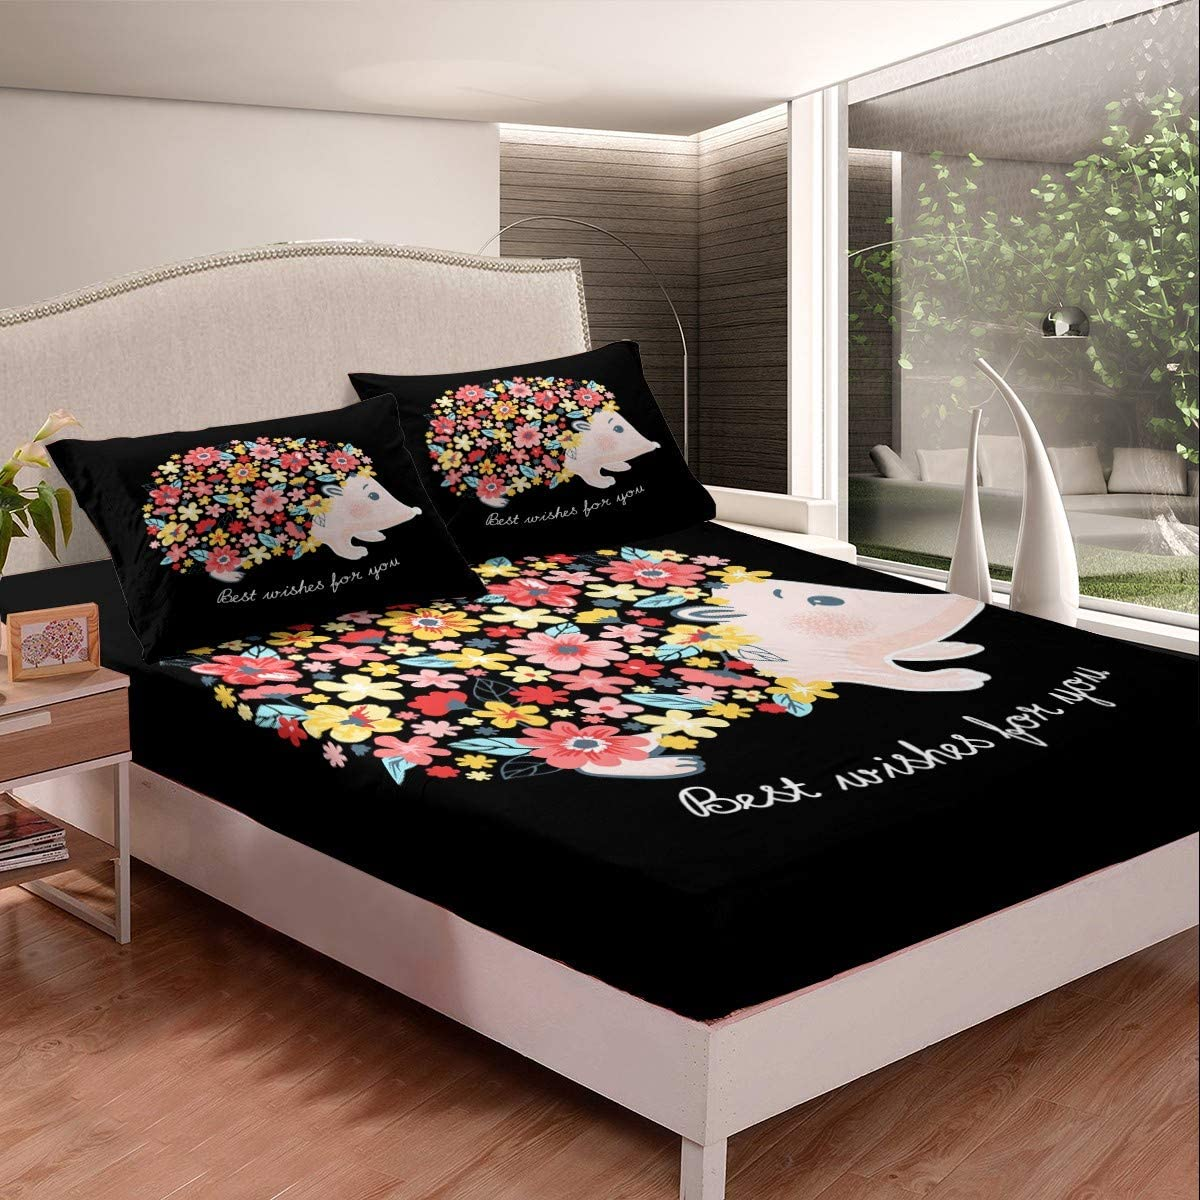 Cute Cartoon Hedgehog Bedding Set Floral Colorful Sheet Bed Year-end Fresno Mall gift